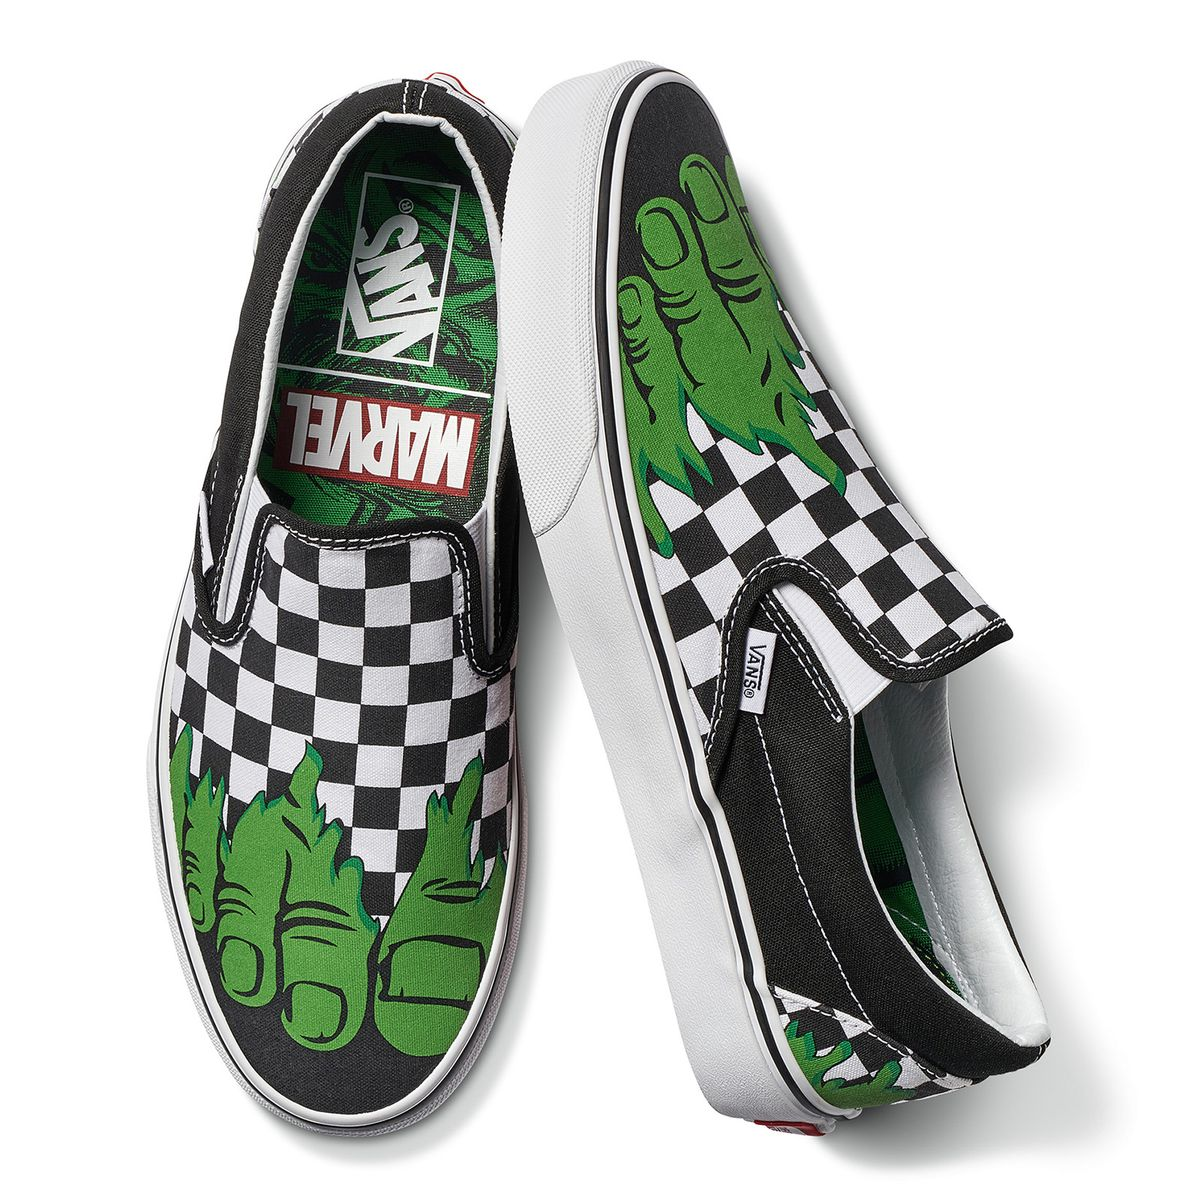 Colombia Compra On Slip Tienda Classic Marvel En Oficial Vans ZqYZrE ae9f69c11f3